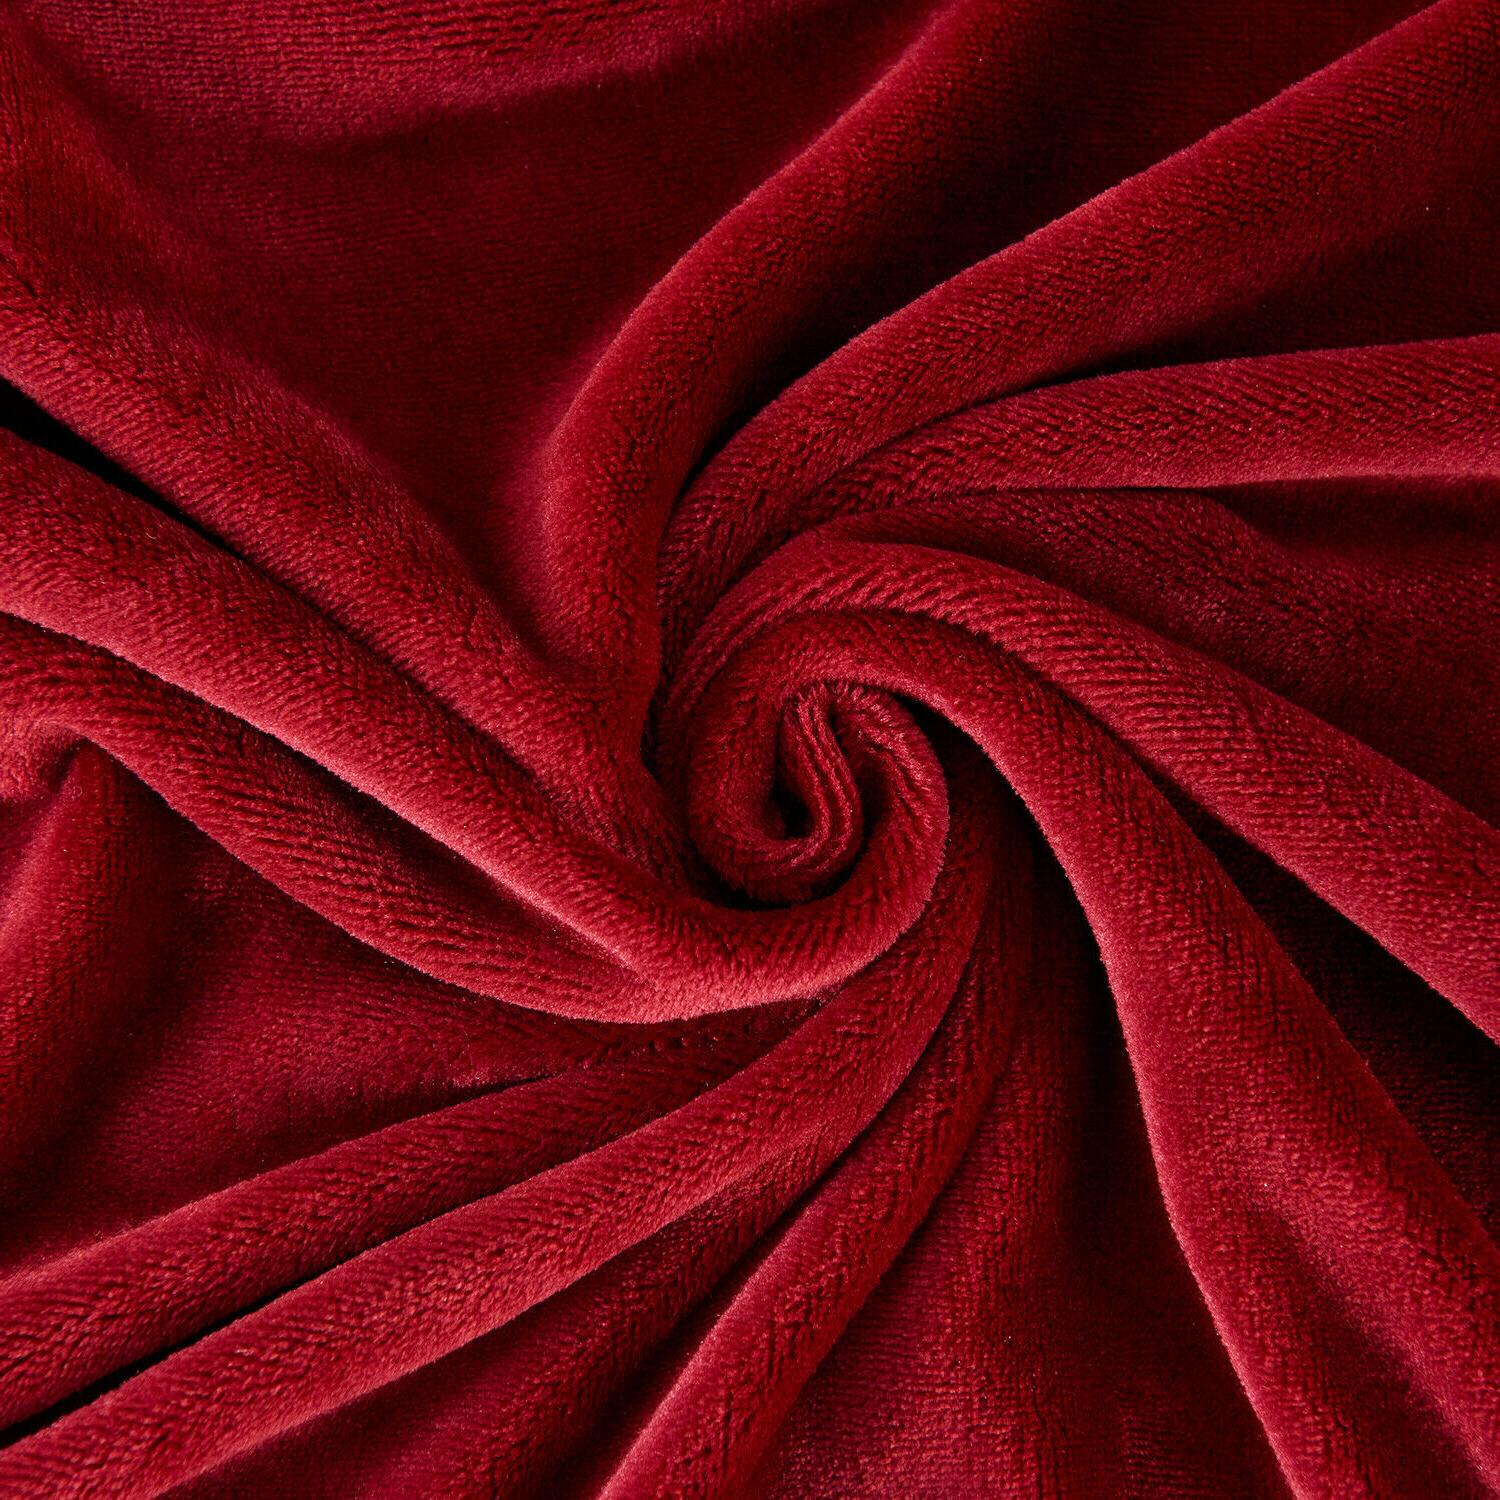 "Luxurious Plush Throw Blanket Soft 50"" 60"" Burgundy"